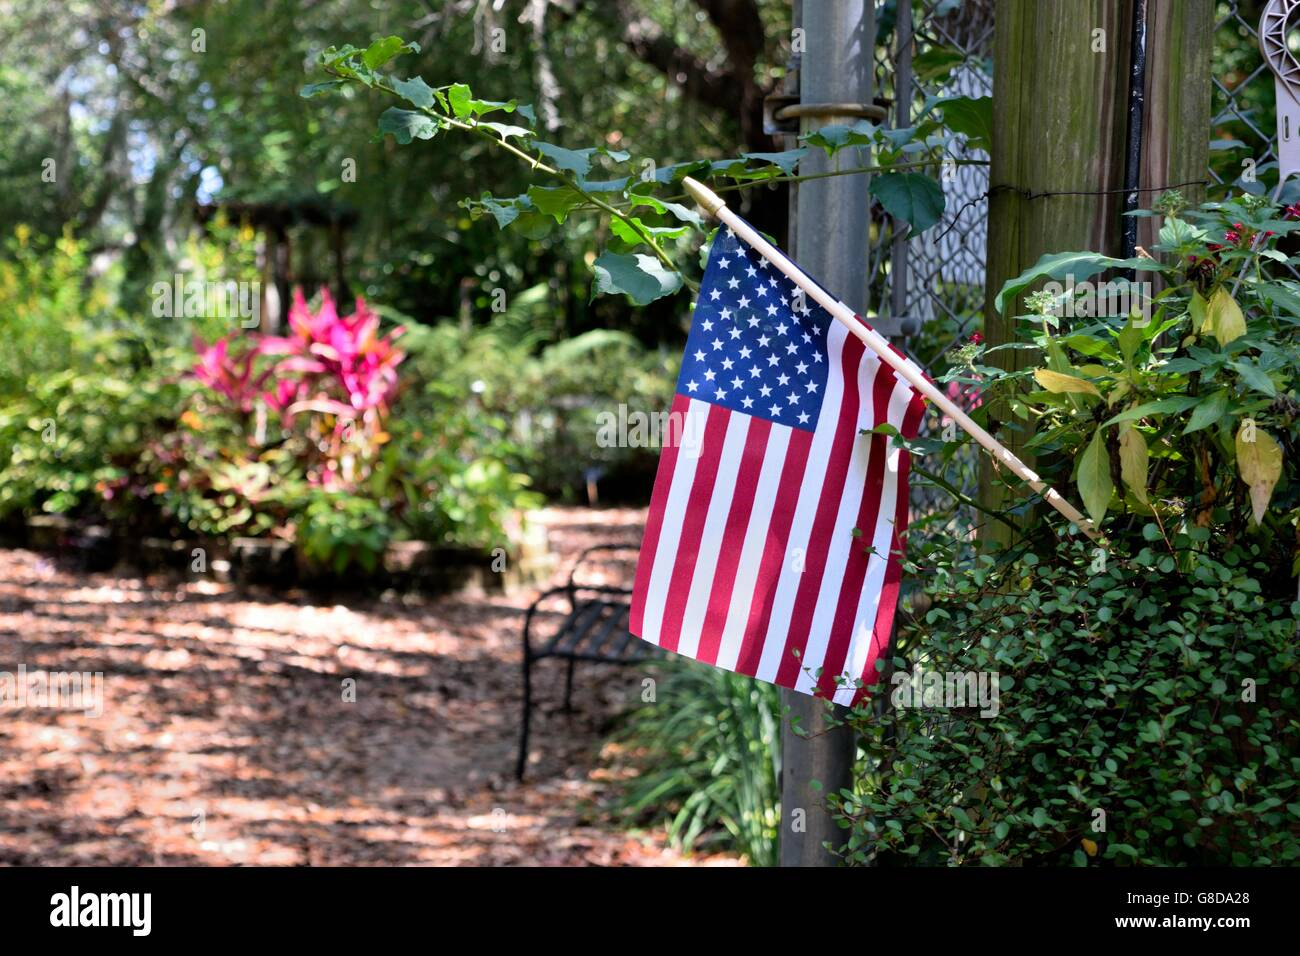 tiny by this soleil flag lorda to beautiful quickweightlosscenter years next of robin in us audience choice garden wins award american a